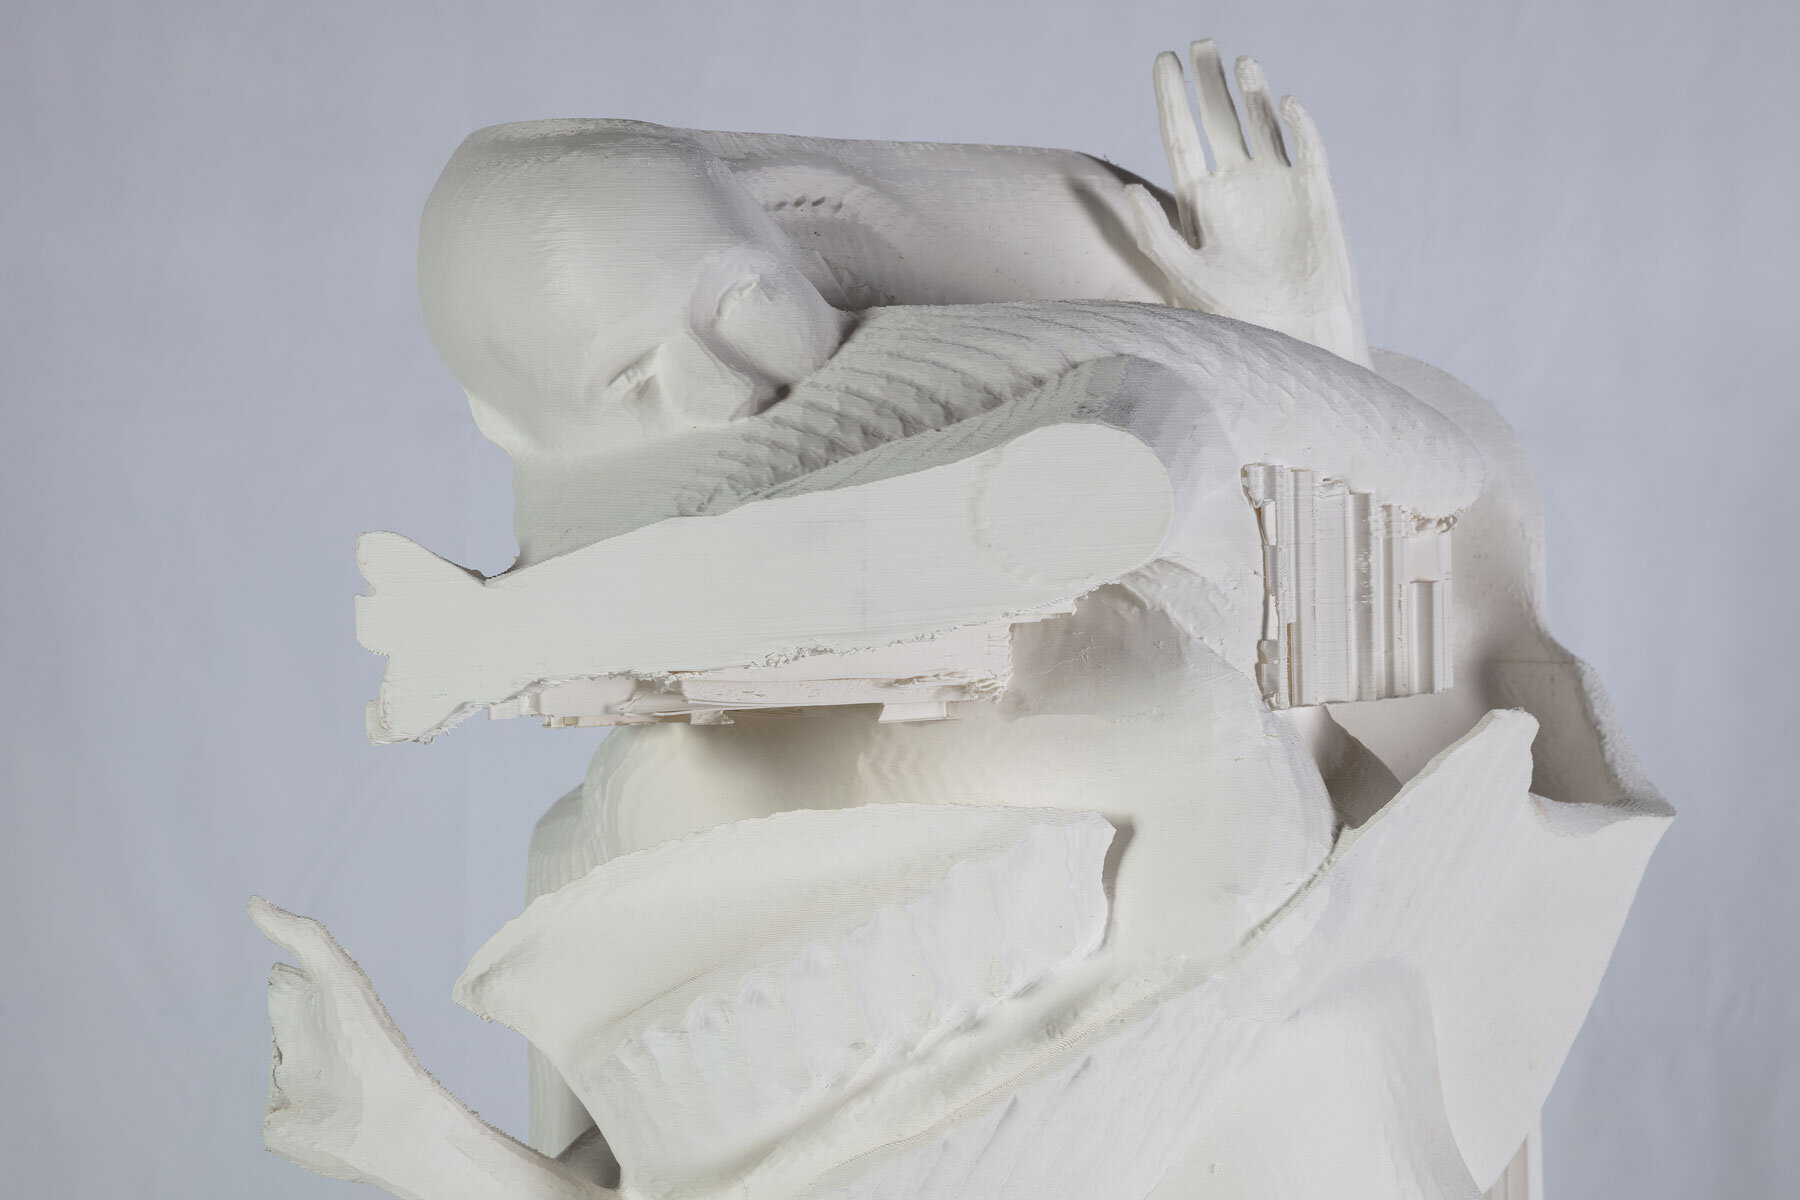 Species Specific_005 (fight)   3D printed PLA, supports    112 x 50 x 90 cm    2019